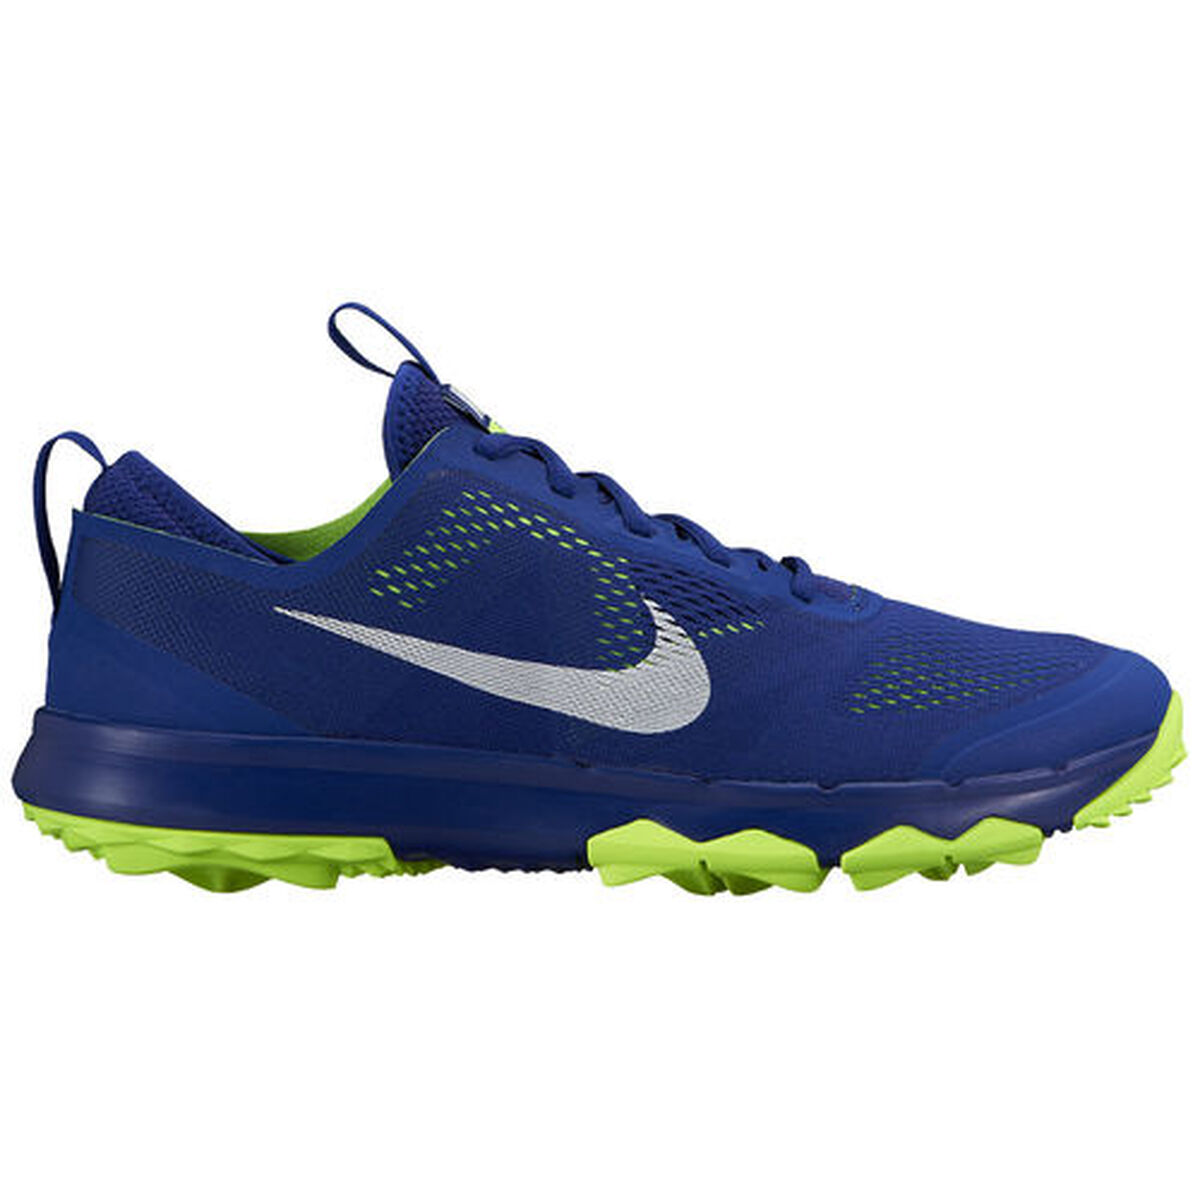 7d7072f3930f8 Nike FI Bermuda Men's Golf Shoe - Royal | PGA TOUR Superstore